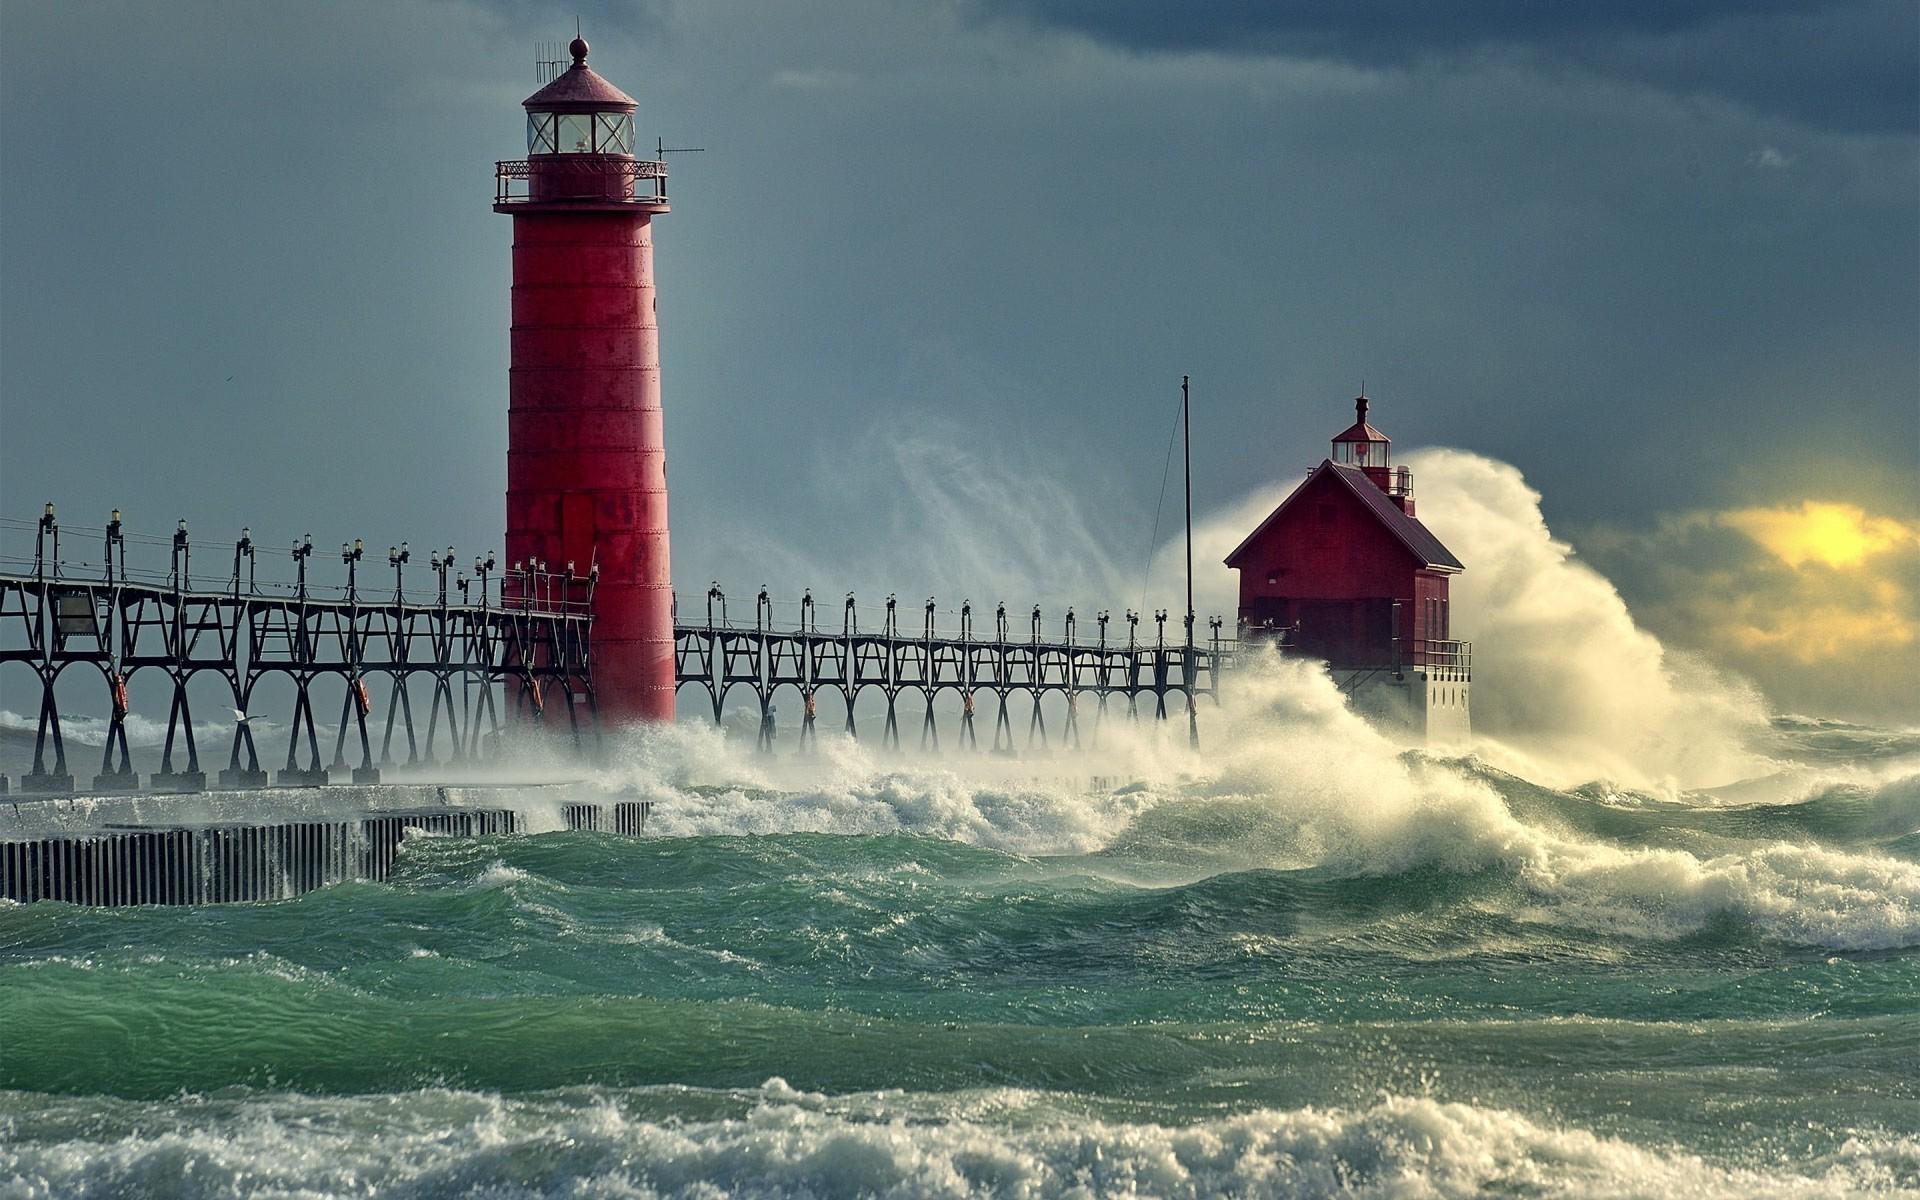 Hd Wallpapers Brands Logos Red Lighthouse Can Withstand The Onslaught Of The Waves